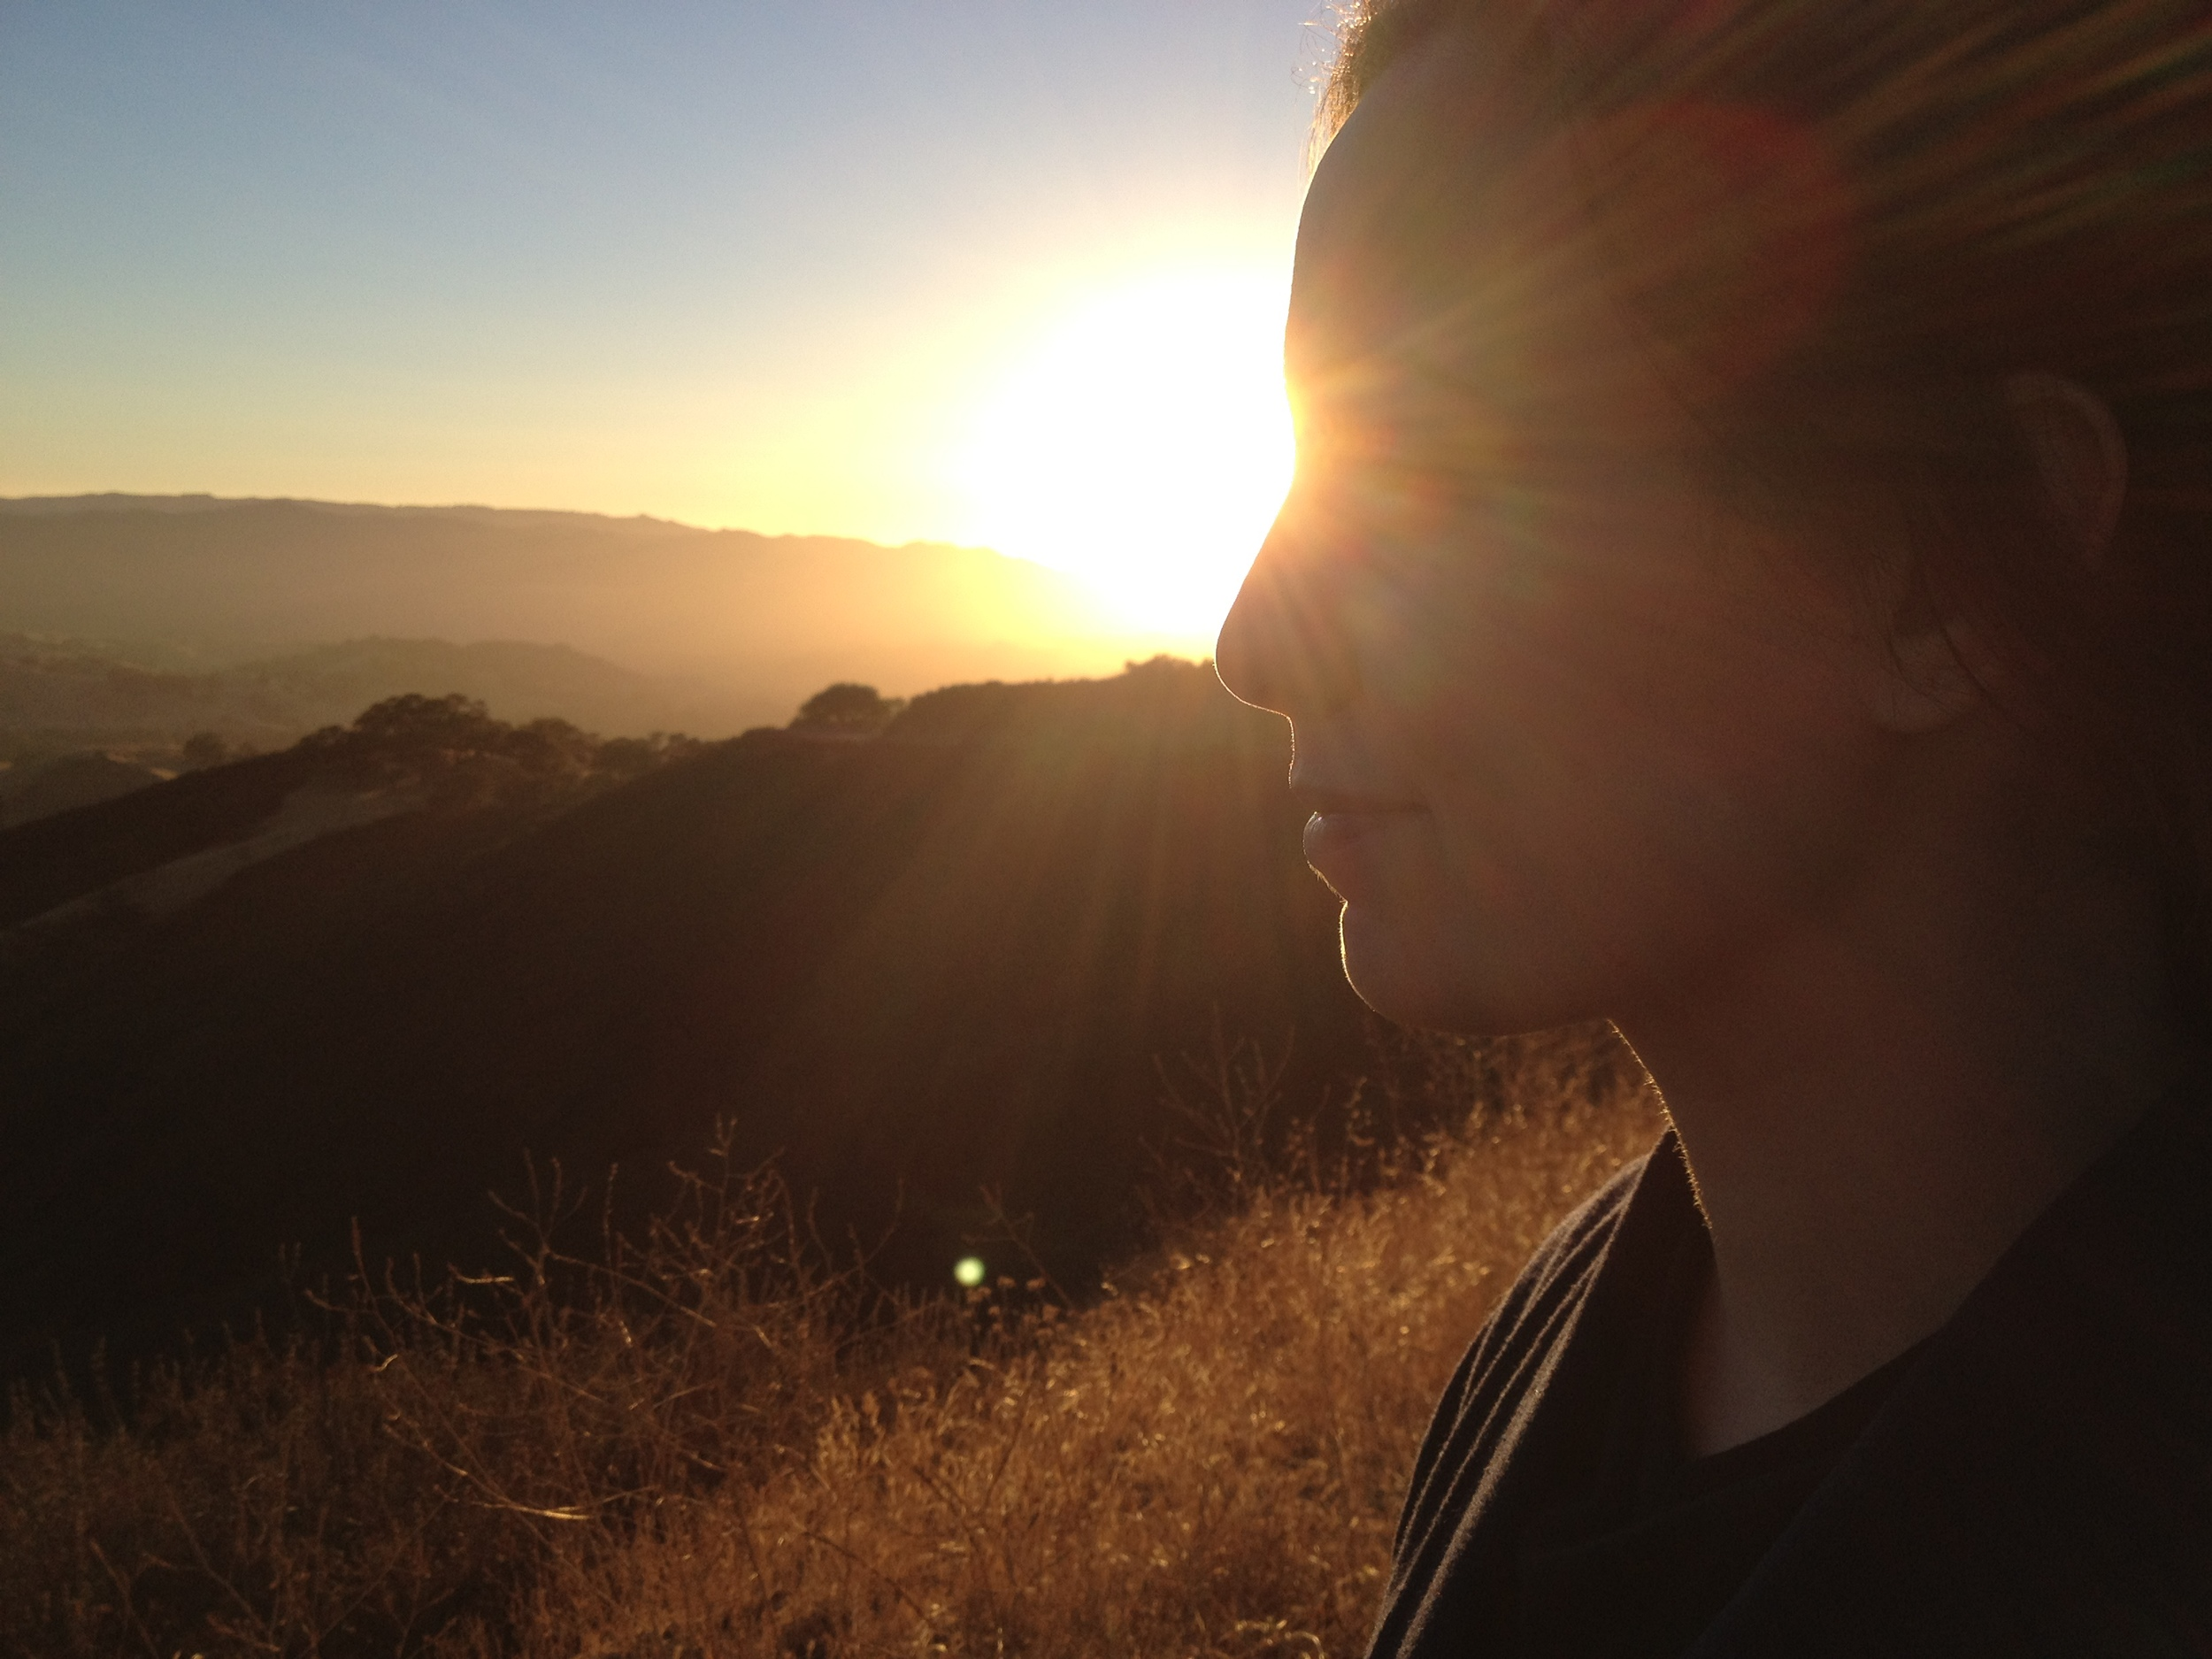 My wife Shawna looking enlightened during one of our hikes. And she is btw.